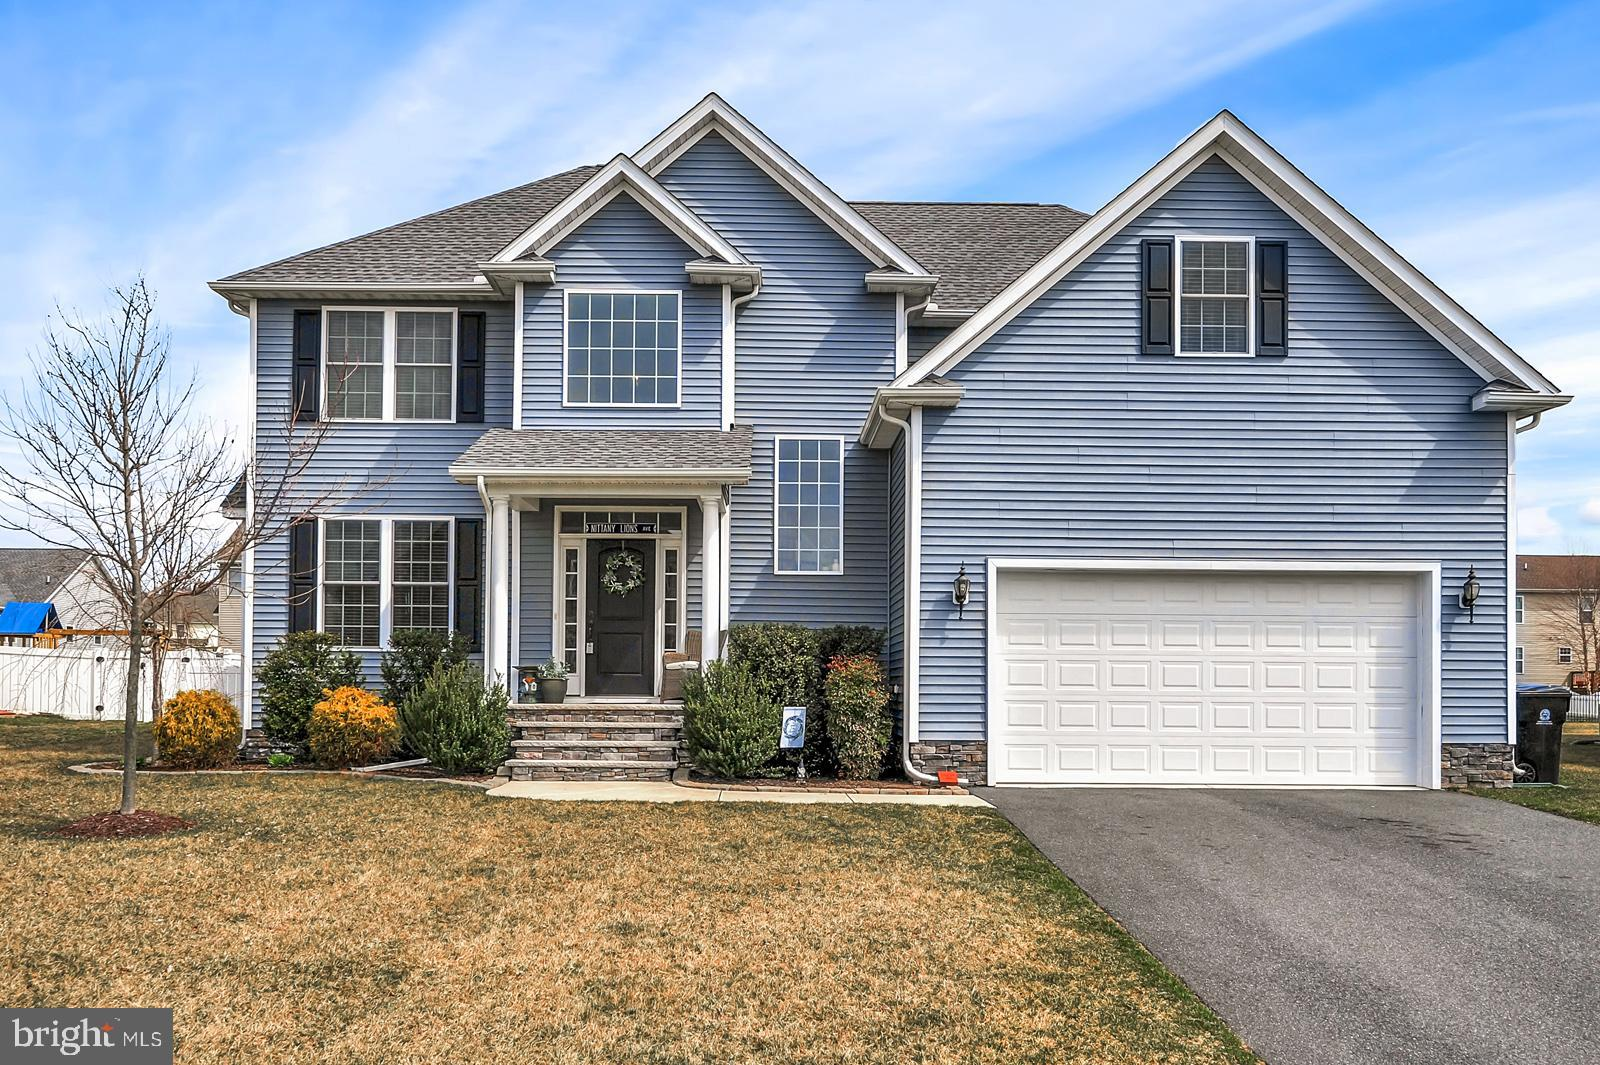 This home is a SHOW-STOPPER!  Welcome to the sought-after neighborhood of Laureltowne in the award winning Caesar Rodney School District.  This 5 year young, C&M built home has pulled out all of the stops.  With over 3,100 square feet and a full basement, there is room for everyone and then some.  As you enter into the home from the covered porch, you and your guests will be impressed by the beautifully appointed open curved staircase with rod iron spindles.  The real hardwood floors in the foyer extend throughout the entire home.  On your left is a formal living room/front room with a gas fireplace and mantle waiting to be decorated for each holiday.  Connected to this room is the formal dining room.  The right side of the home has an open concept feel with a large family room, kitchen, and morning room.  The kitchen boasts stunning white cabinetry with granite countertops, stainless steel appliances, kitchen island, pantry, and a gas range.  The adjacent morning room allows for the perfect amount of sunshine with its abundance of windows and sliders to the backyard.  Upstairs you will find 4 appropriately sized guest bedrooms, all with overhead lights.  The last bedroom is the master suite, and you will fall in love.  The bedroom has tray ceilings, recessed lighting, ceiling fan, an enormous walk-in closet (with two insulated storage rooms), and of course an equally impressive bathroom to go with it!  The master bathroom is fully tiled with separate his/her vanities, corner garden tub, and a glass enclosed shower.  WOW!   Head all the way downstairs into the unfinished basement and you have over 1300 sqft of extra space.  Owners have used this as a play room, workout area, workshop; the possibilities are endless! Out back the show doesn~t stop.  Relax in your own outside oasis as a maintenance free deck leads to a stone patio with a built-in firepit.  All of this overlooks the well-maintained fenced-in yard.  Other features you will love about this home: lawn irri